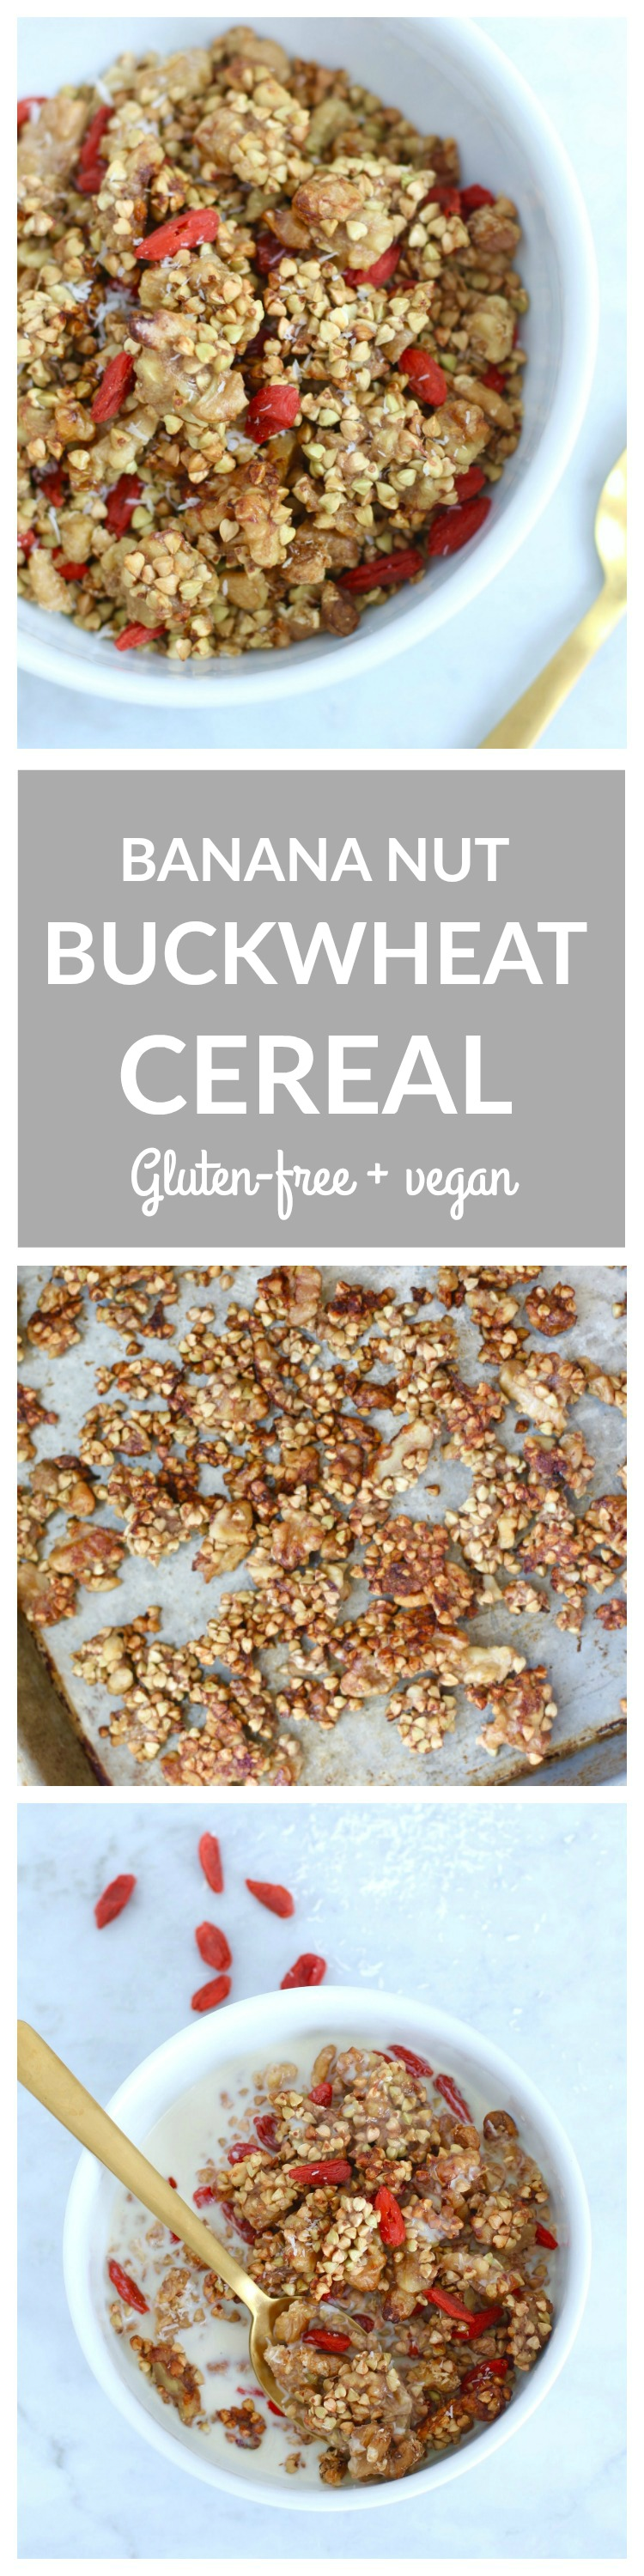 Banana Nut Buckwheat Cereal - a healthy breakfast cereal made with gluten-free buckwheat groats. Slightly sweetened with banana and maple syrup. #vegan #glutenfree